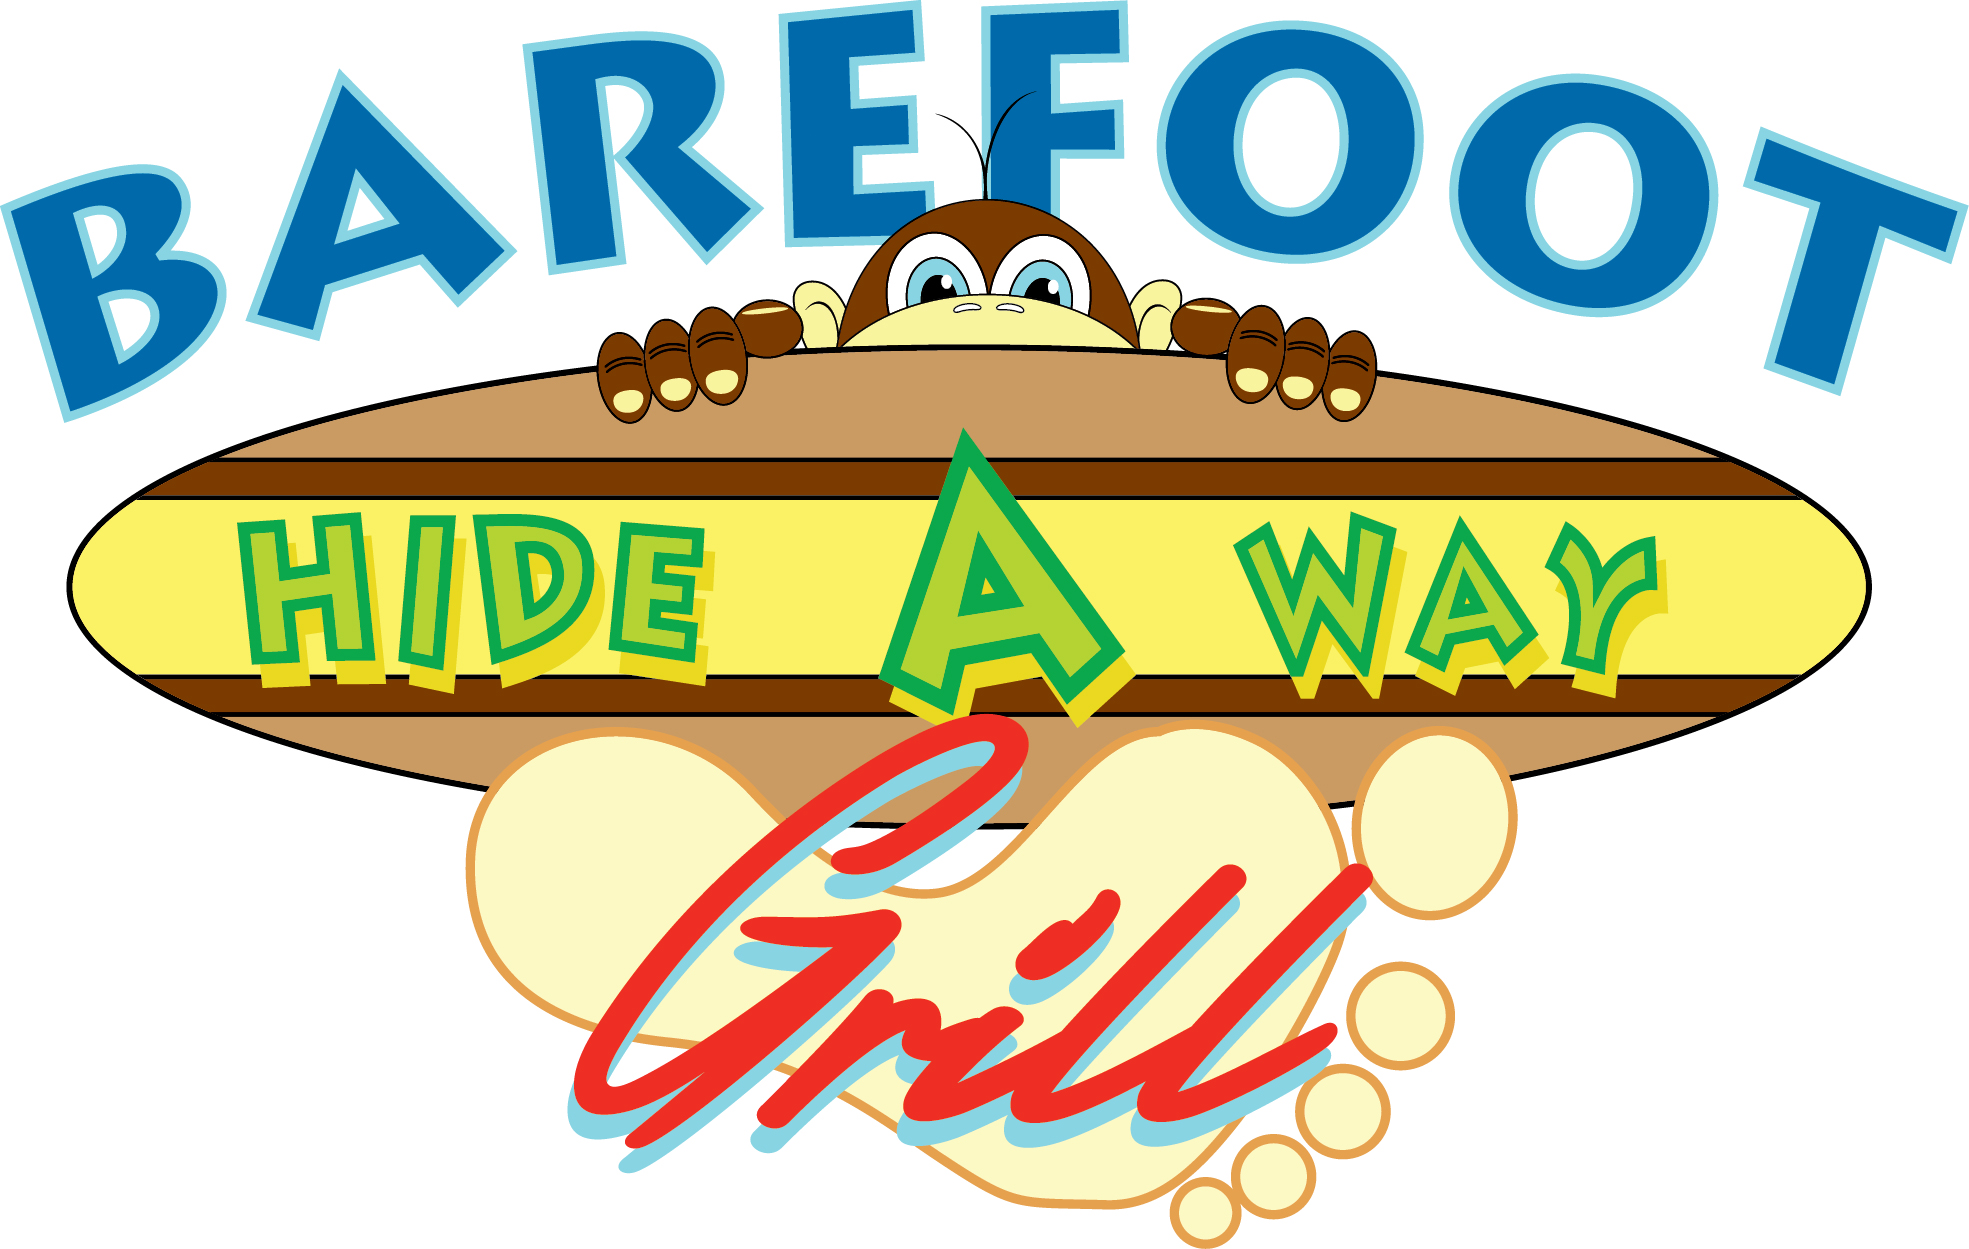 Barefoot Hide-A-Way Grill